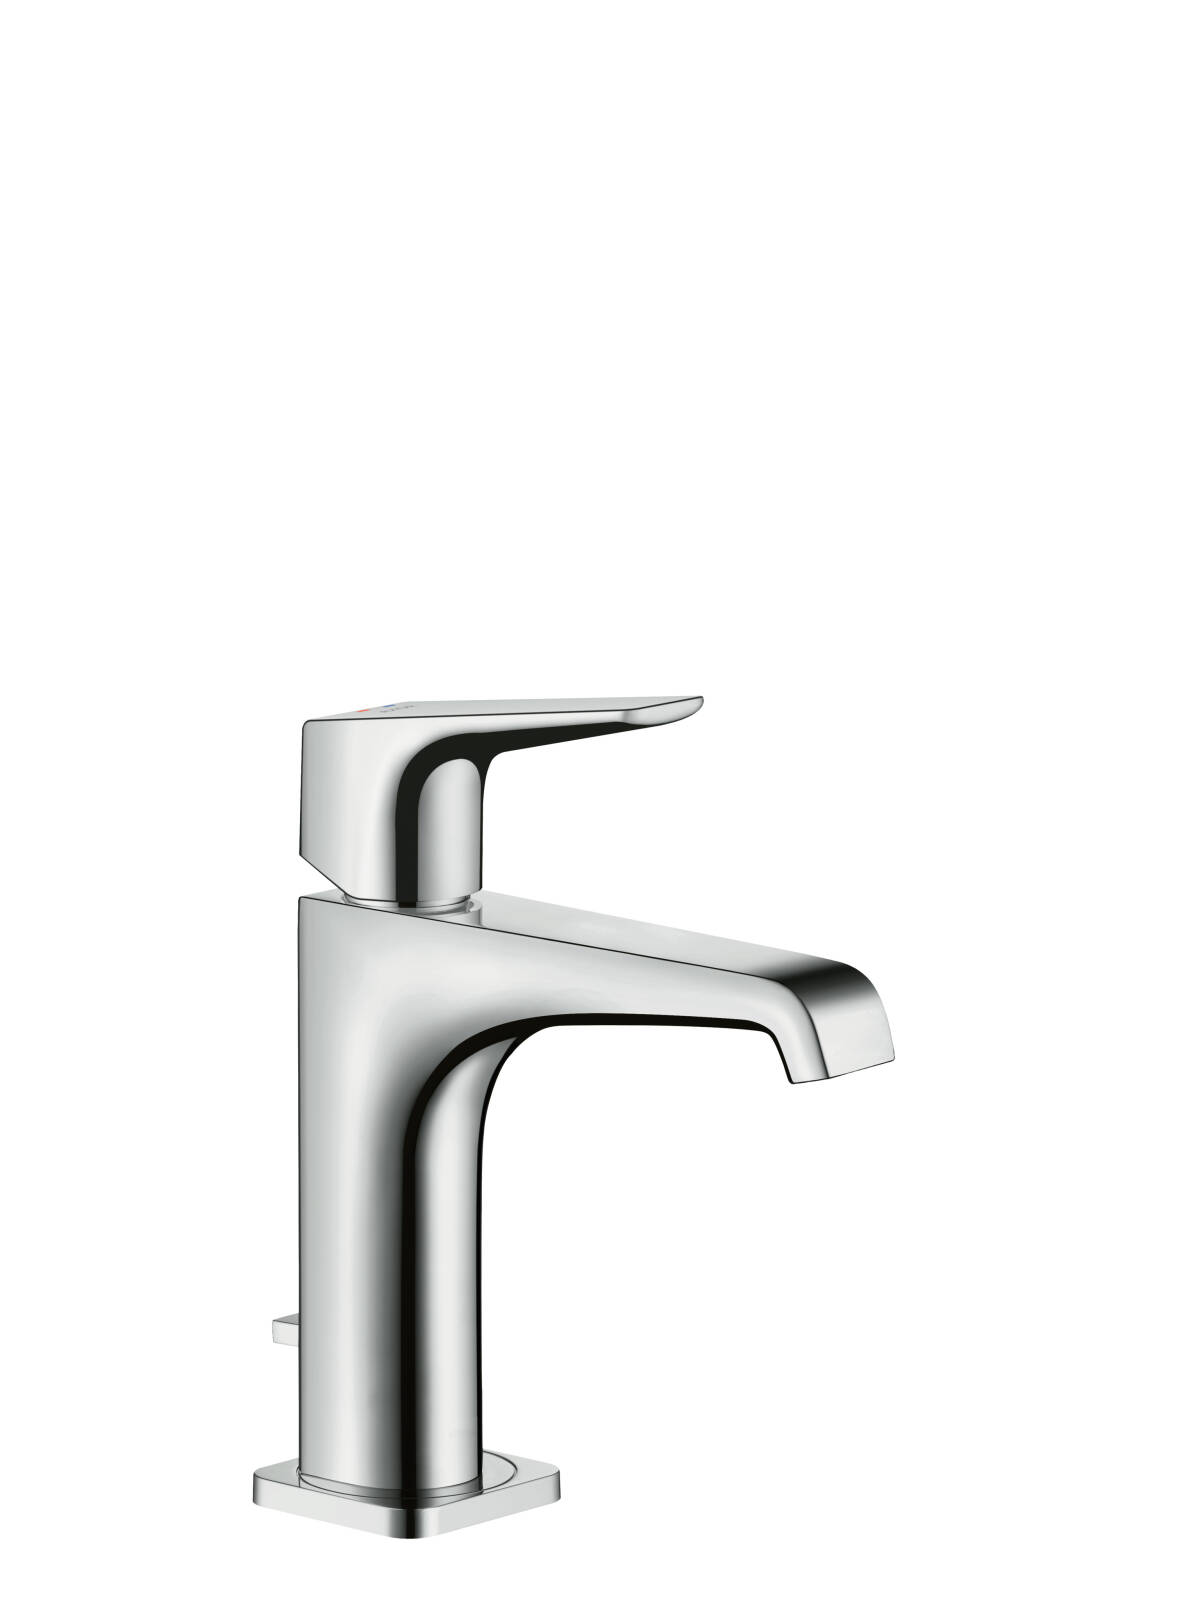 Single lever basin mixer 130 with lever handle and pop-up waste set, Chrome, 36110000